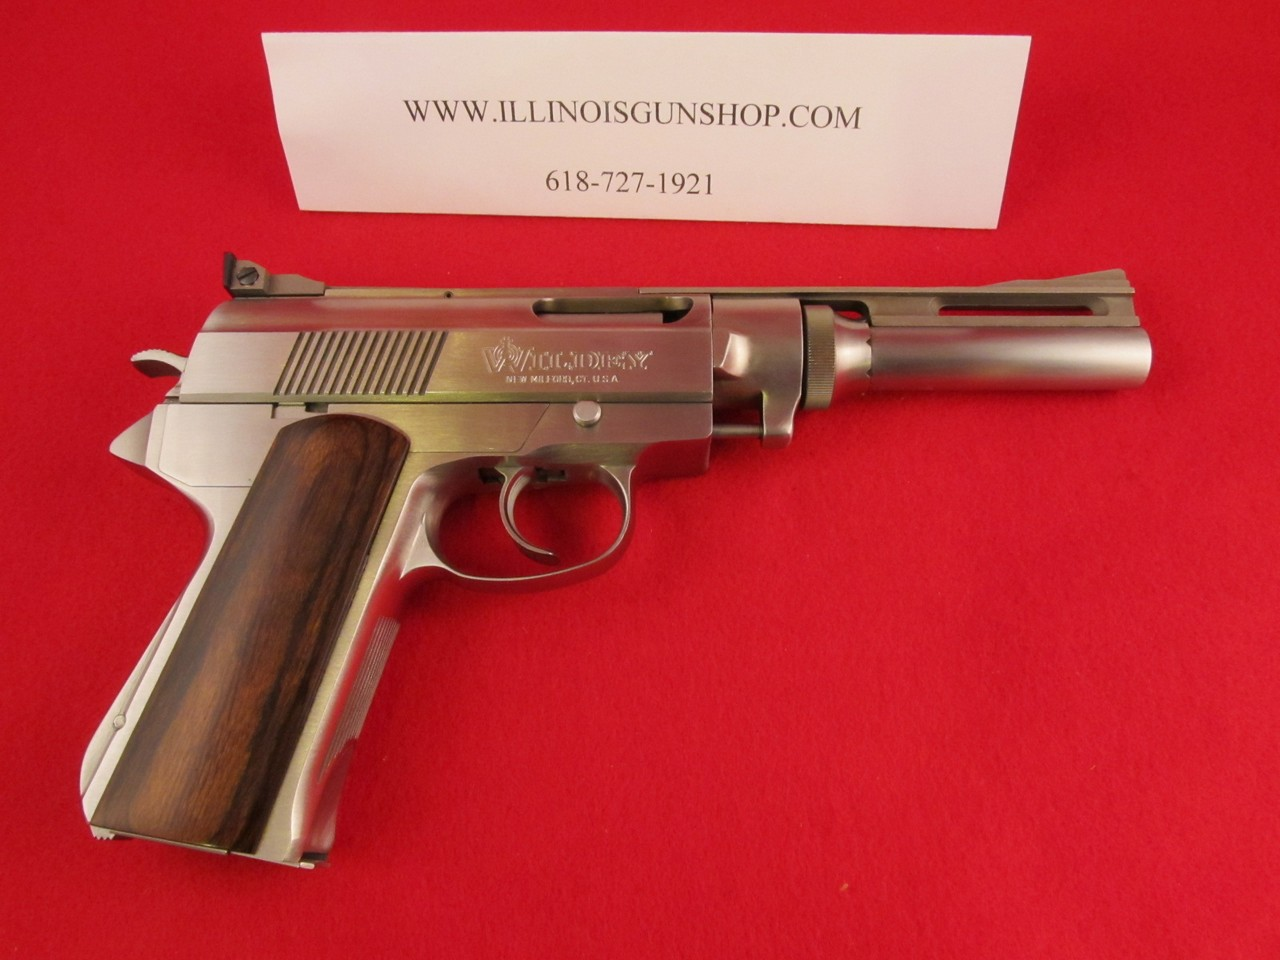 Wildey .45 Win Mag Pistol. Survivor Model with 7-inch barrel. (Picture courtesy Illinoisgunshop.com)